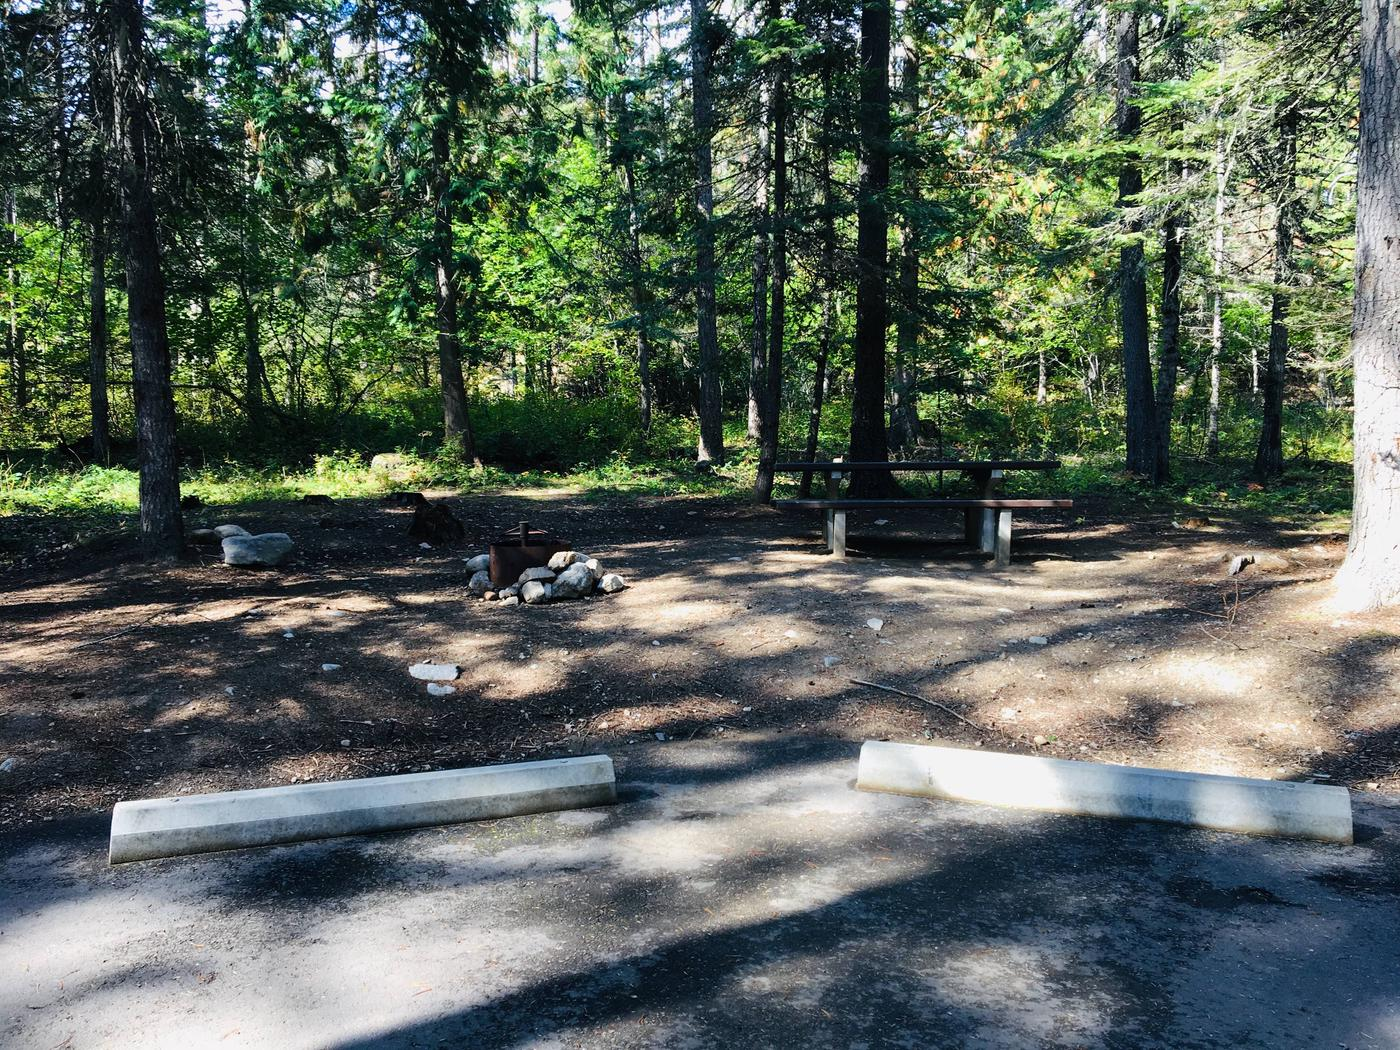 Outlet Campground Site 23